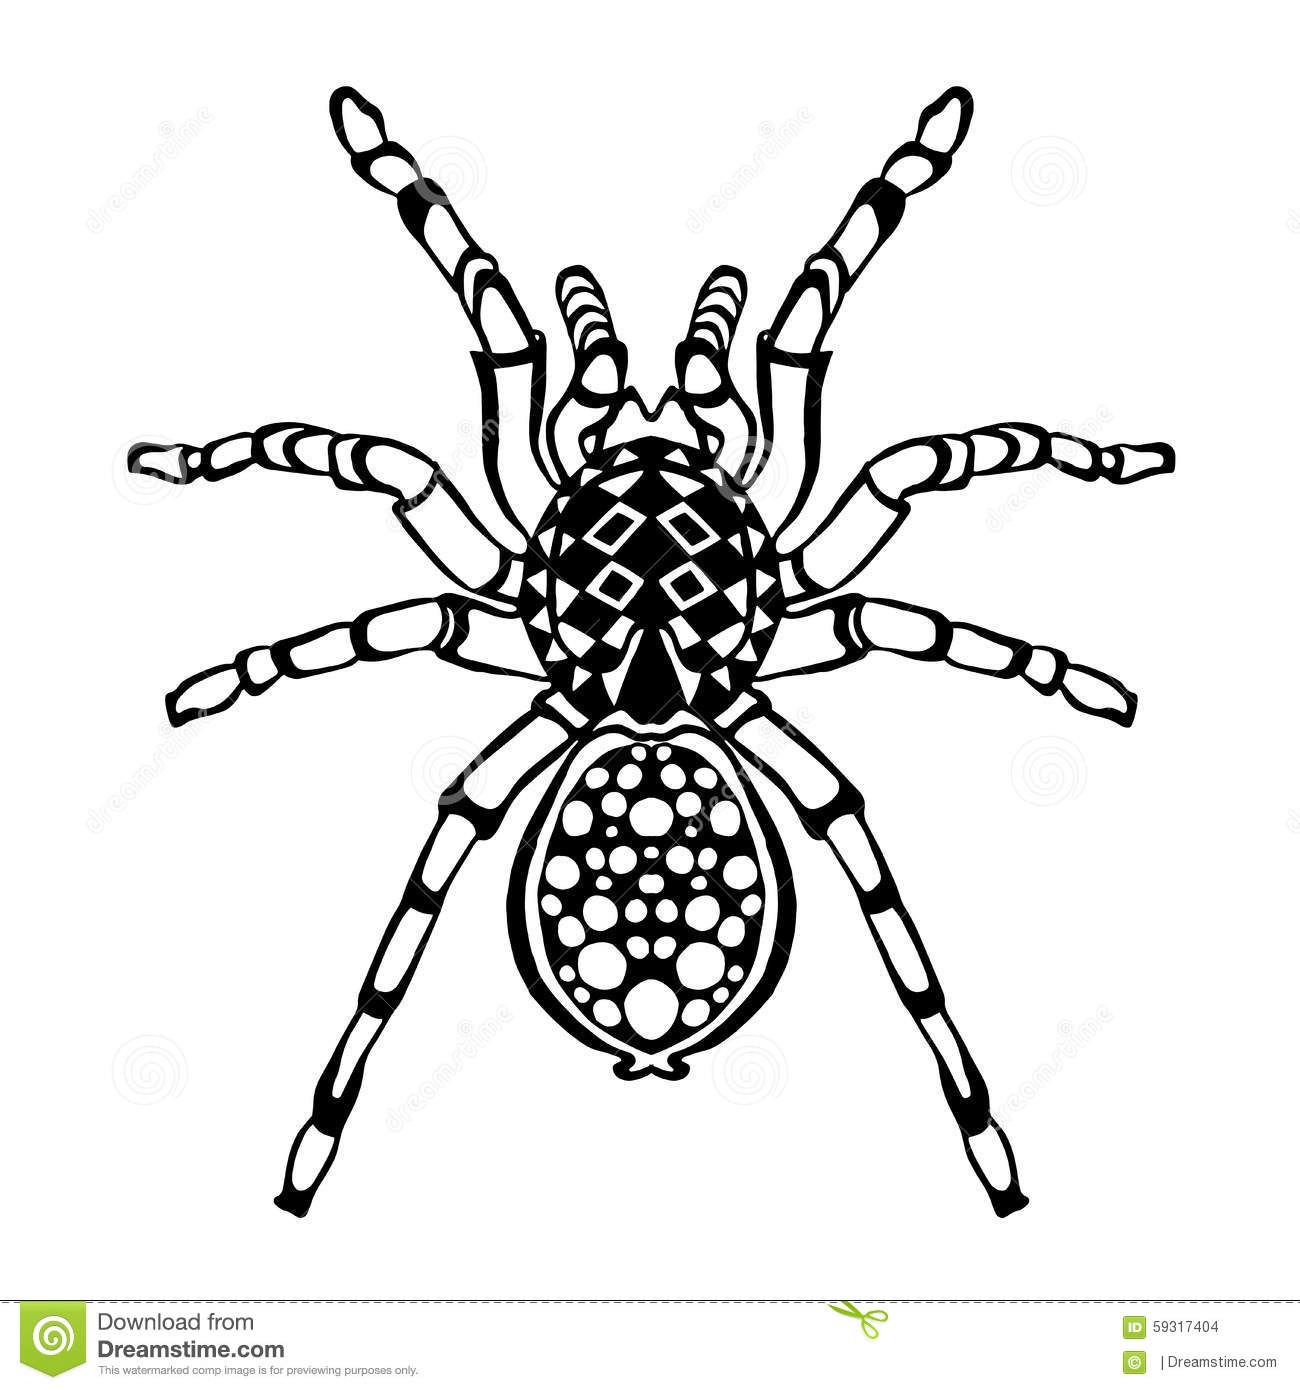 Zentangle Stylized Spider Sketch For Tattoo Or T Shirt